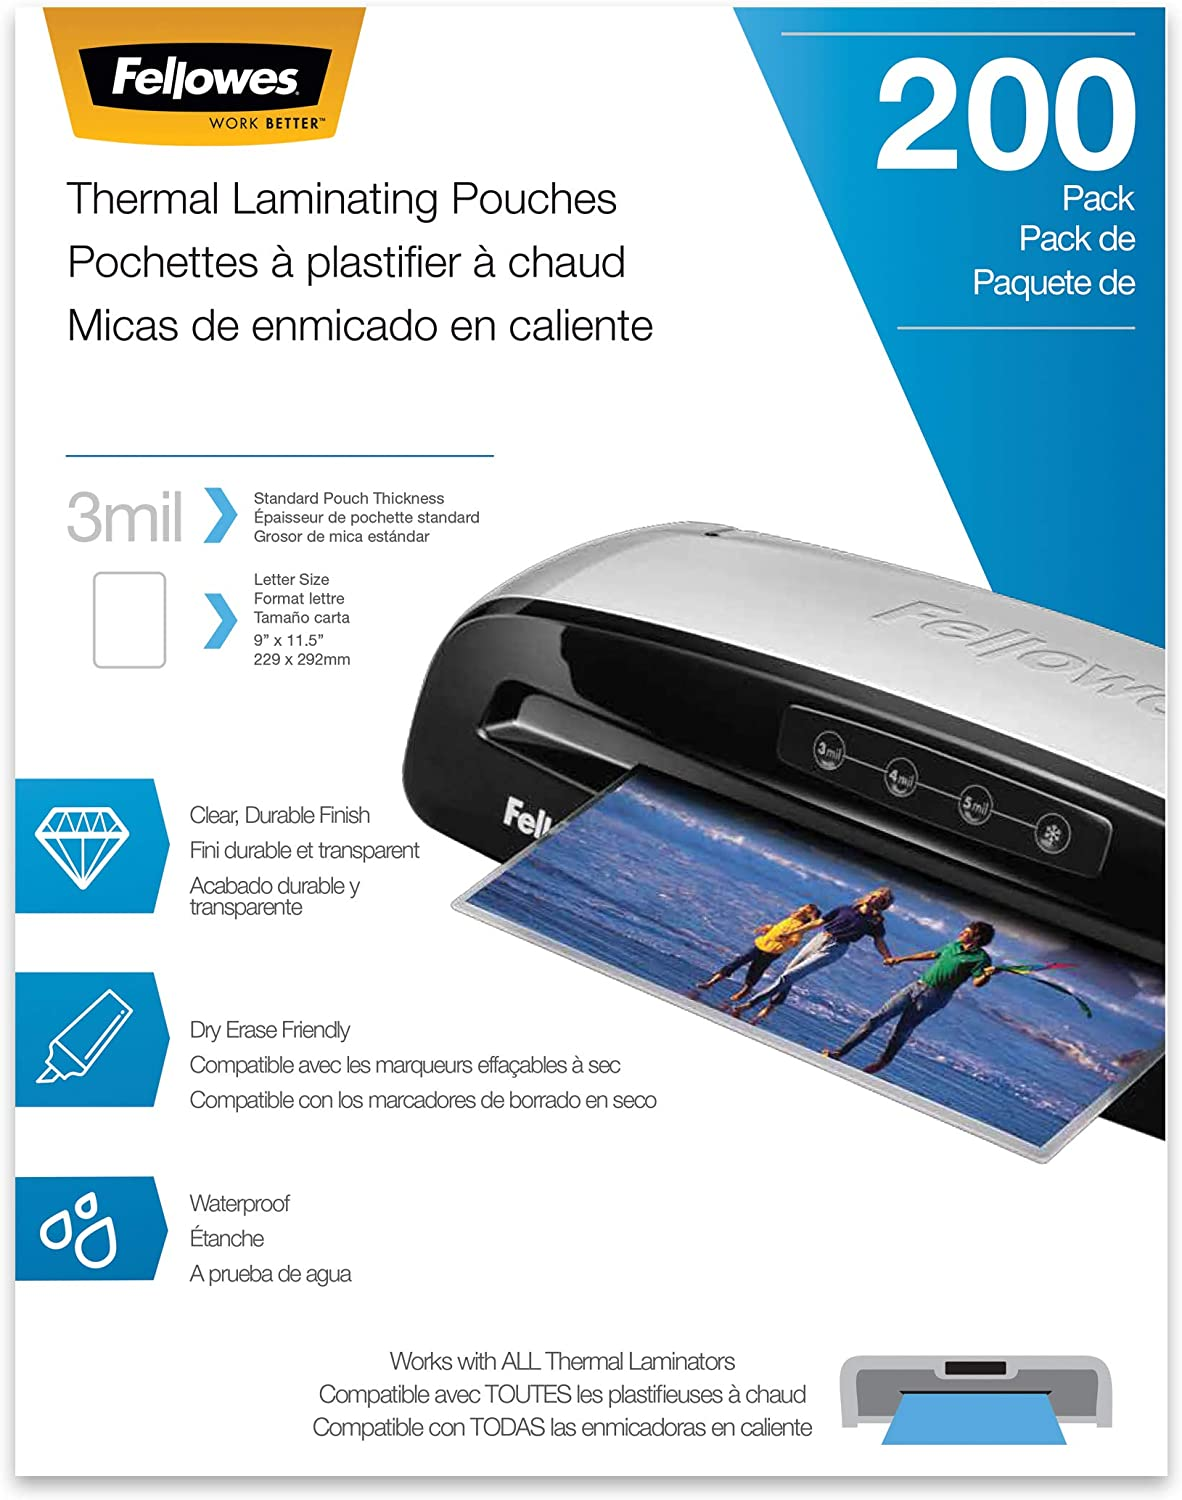 Letter Size 9 x 11.5-Inches 5 mil, Fellowes Thermal Laminating Pouches